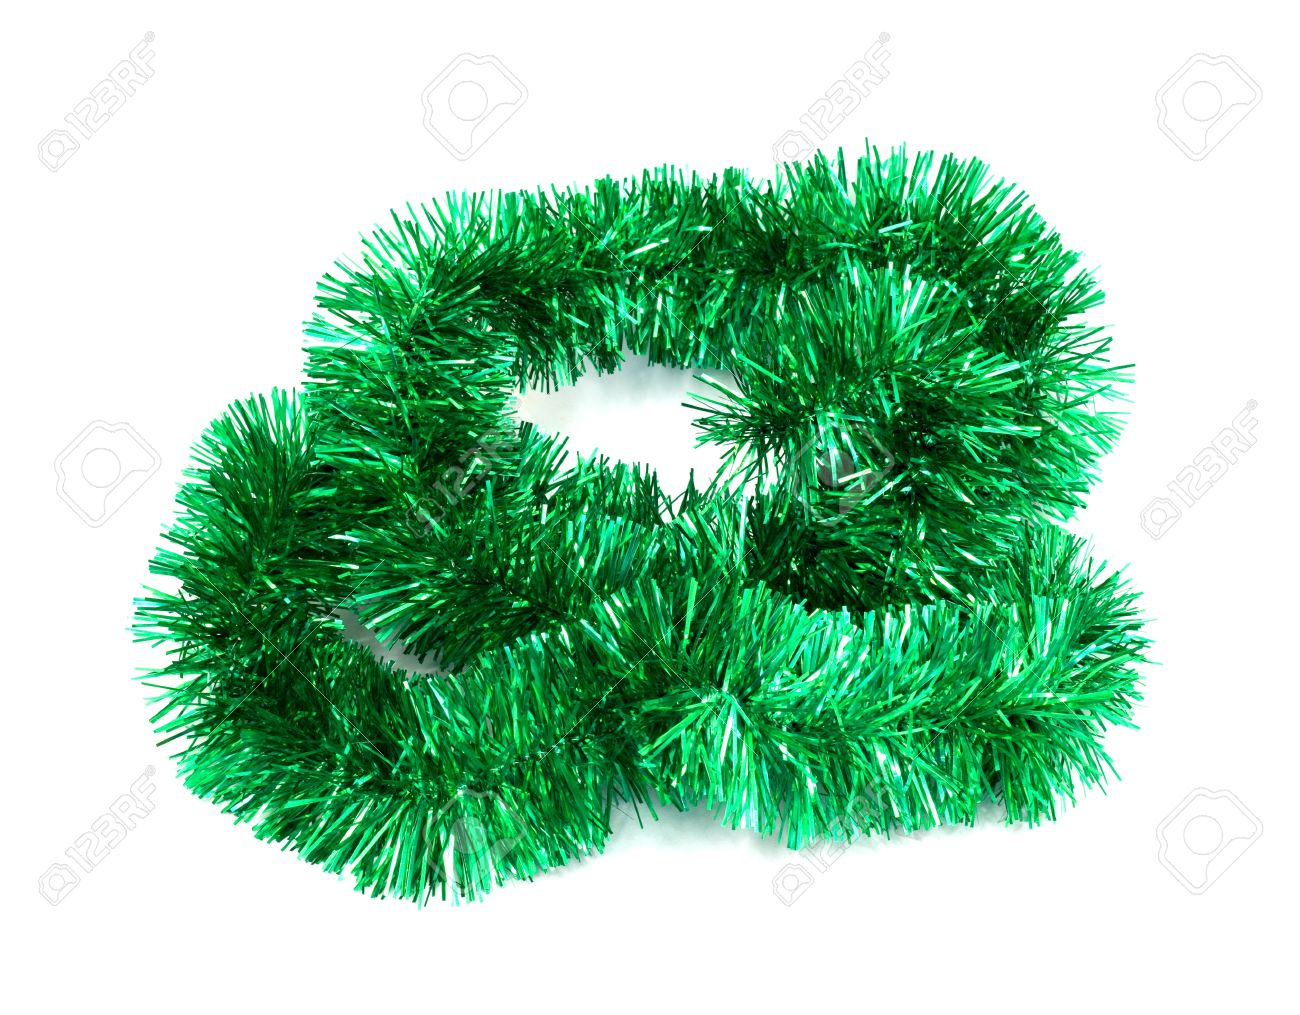 Christmas Tinsel Garland.Green Christmas Tinsel Garland